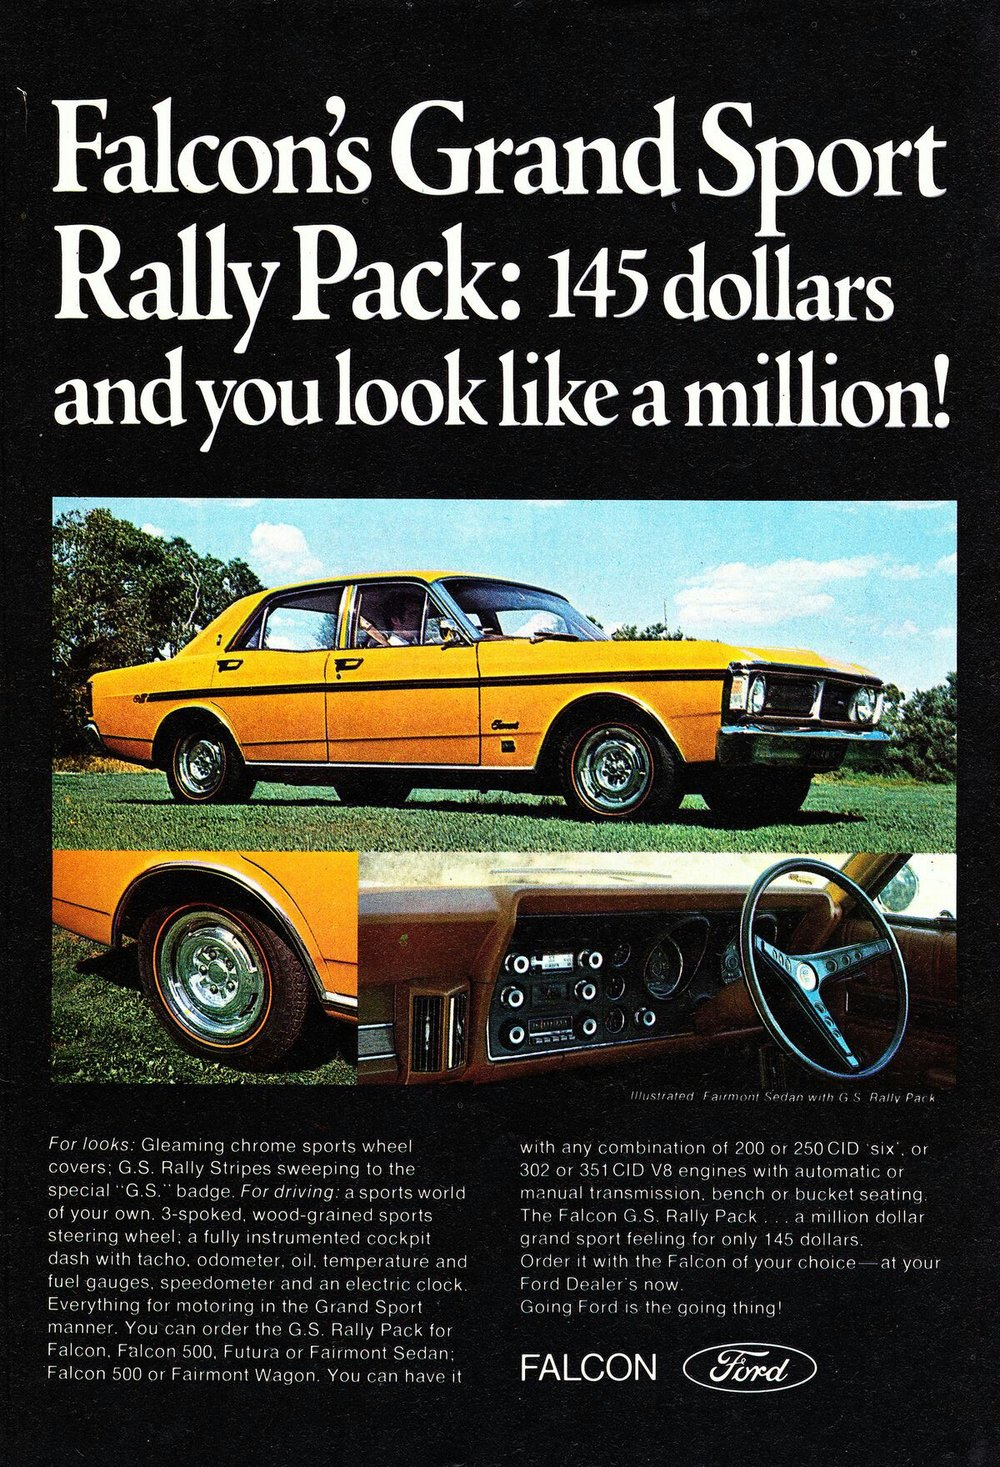 Ford Australia Tunnel Ram Engines 1970 Xy Falcon Grand Sport Rally Pack